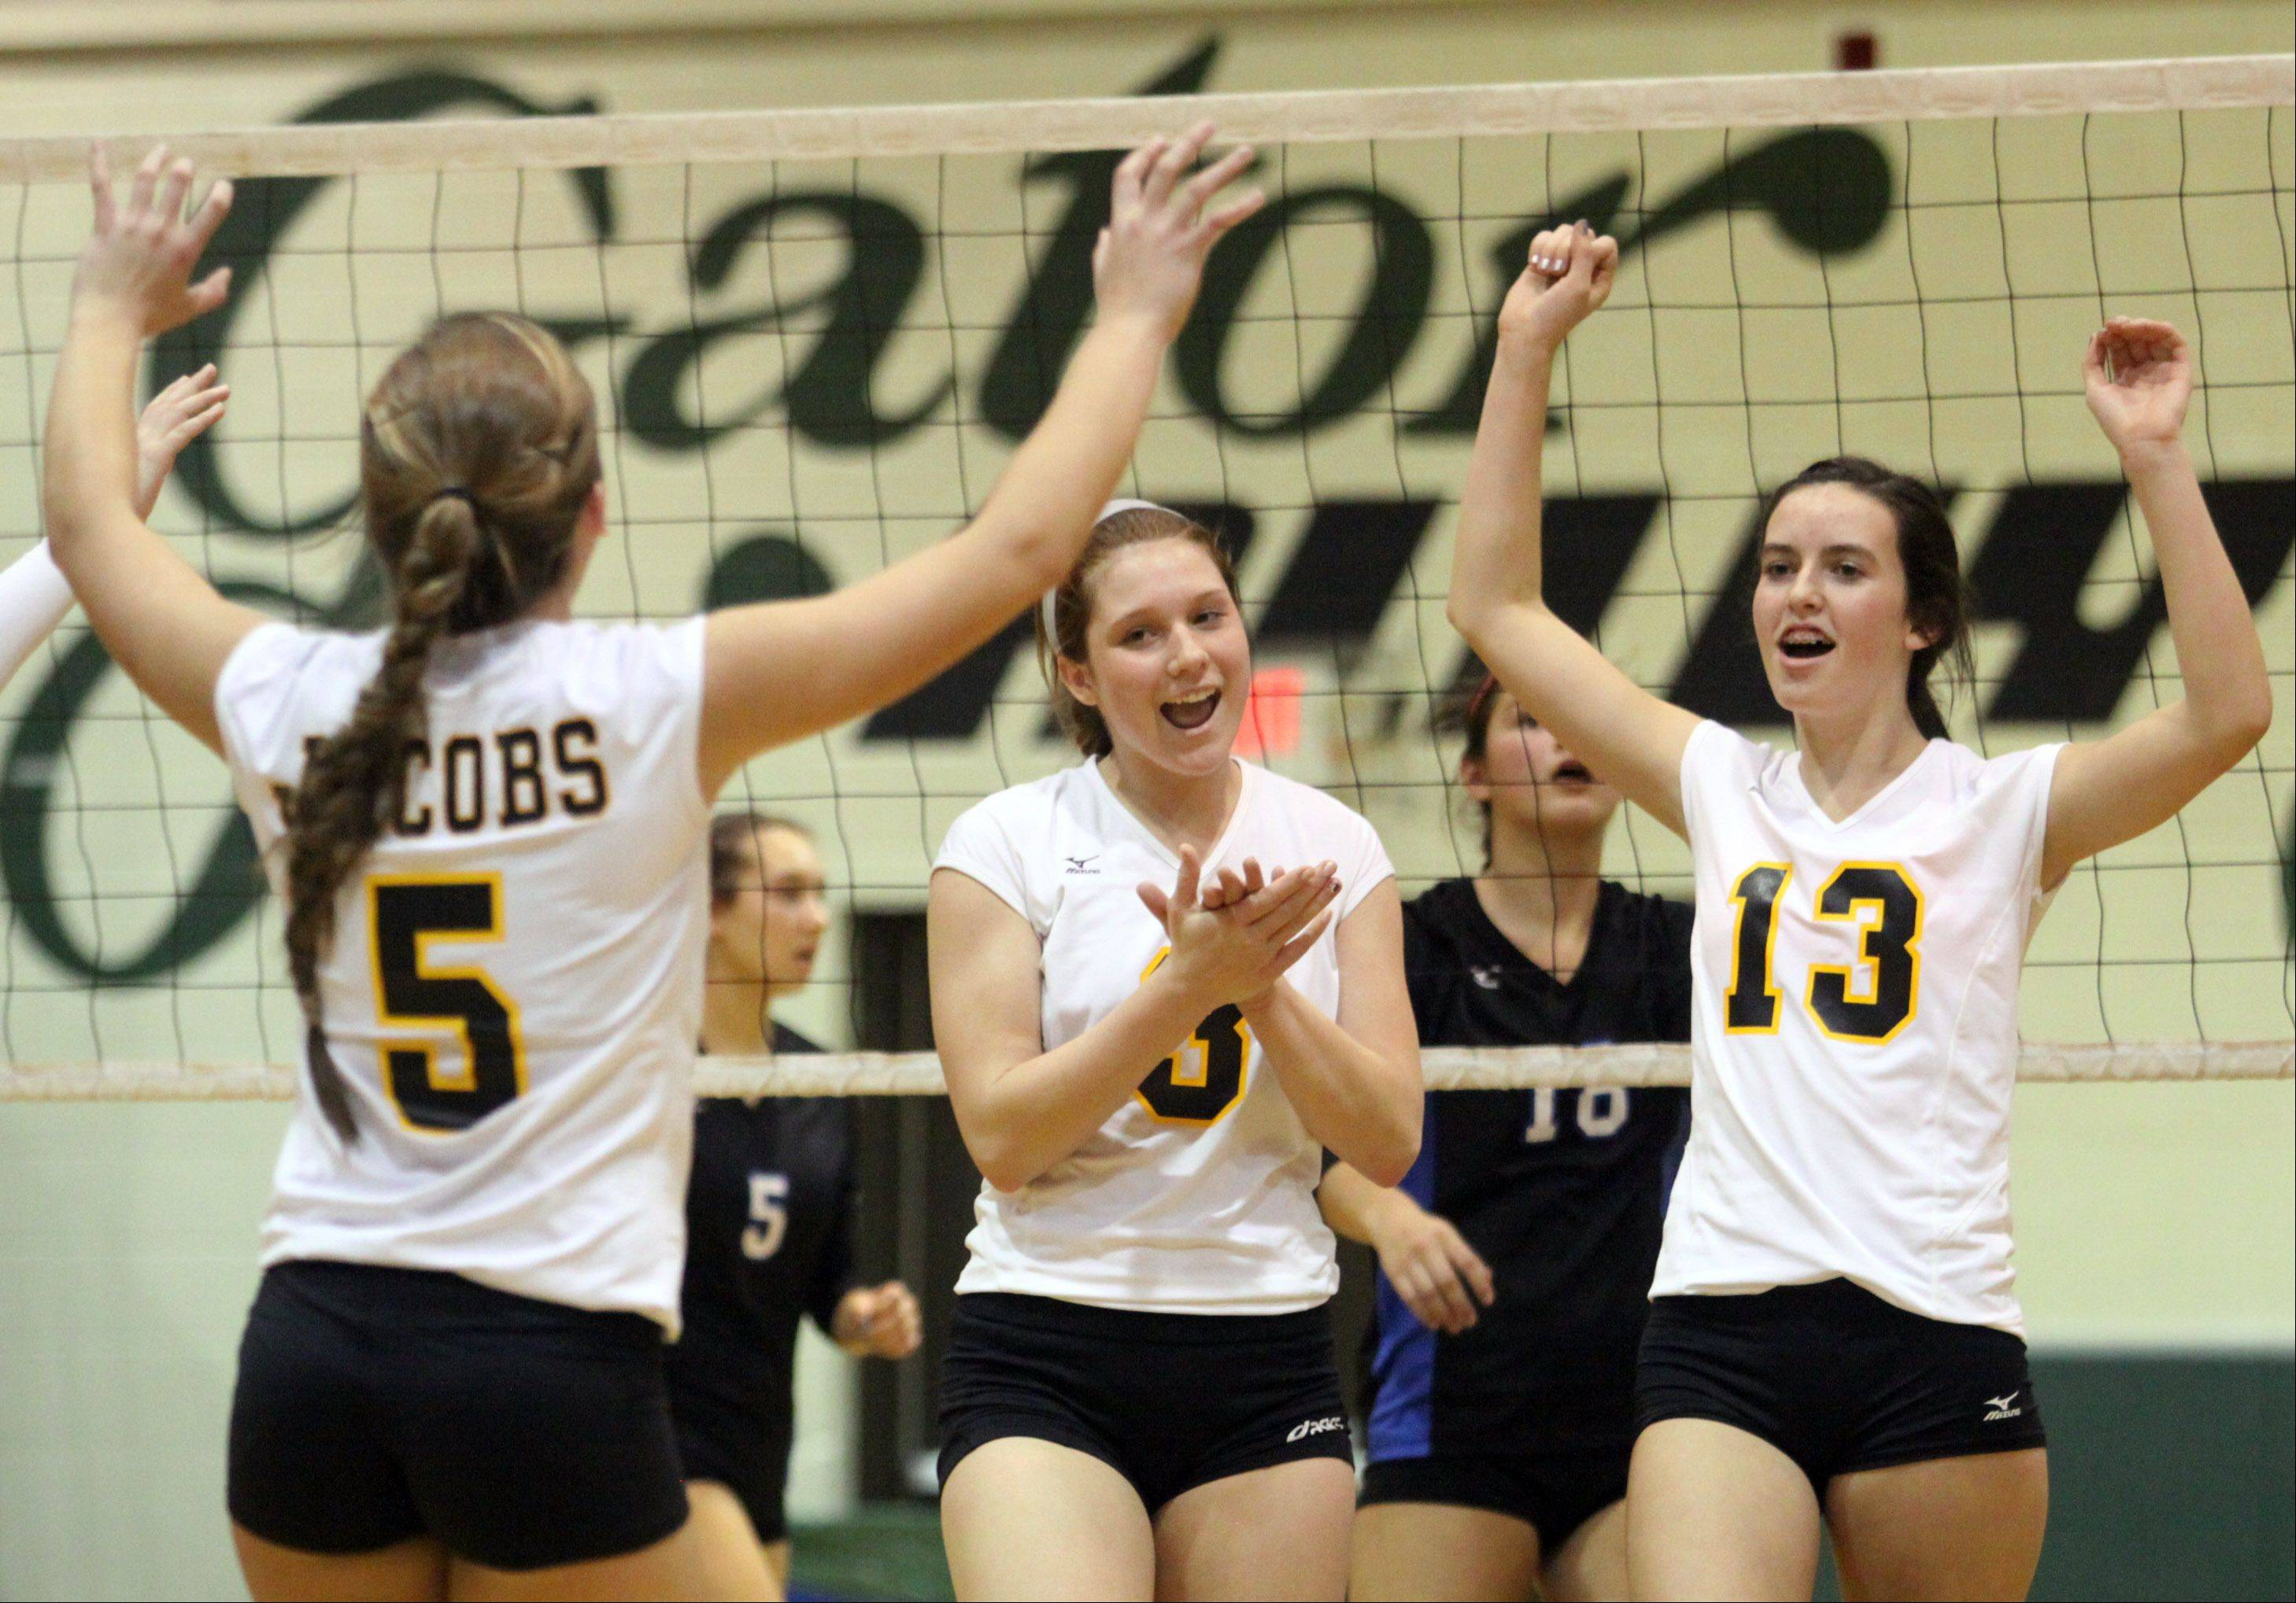 Jacobs' players, from left, Maris Smith, Alyssa Ehrhardt, and Katie Mahoney celebrate a victory over Dundee-Crown in a regional game at Crystal Lake South High School on Monday night.